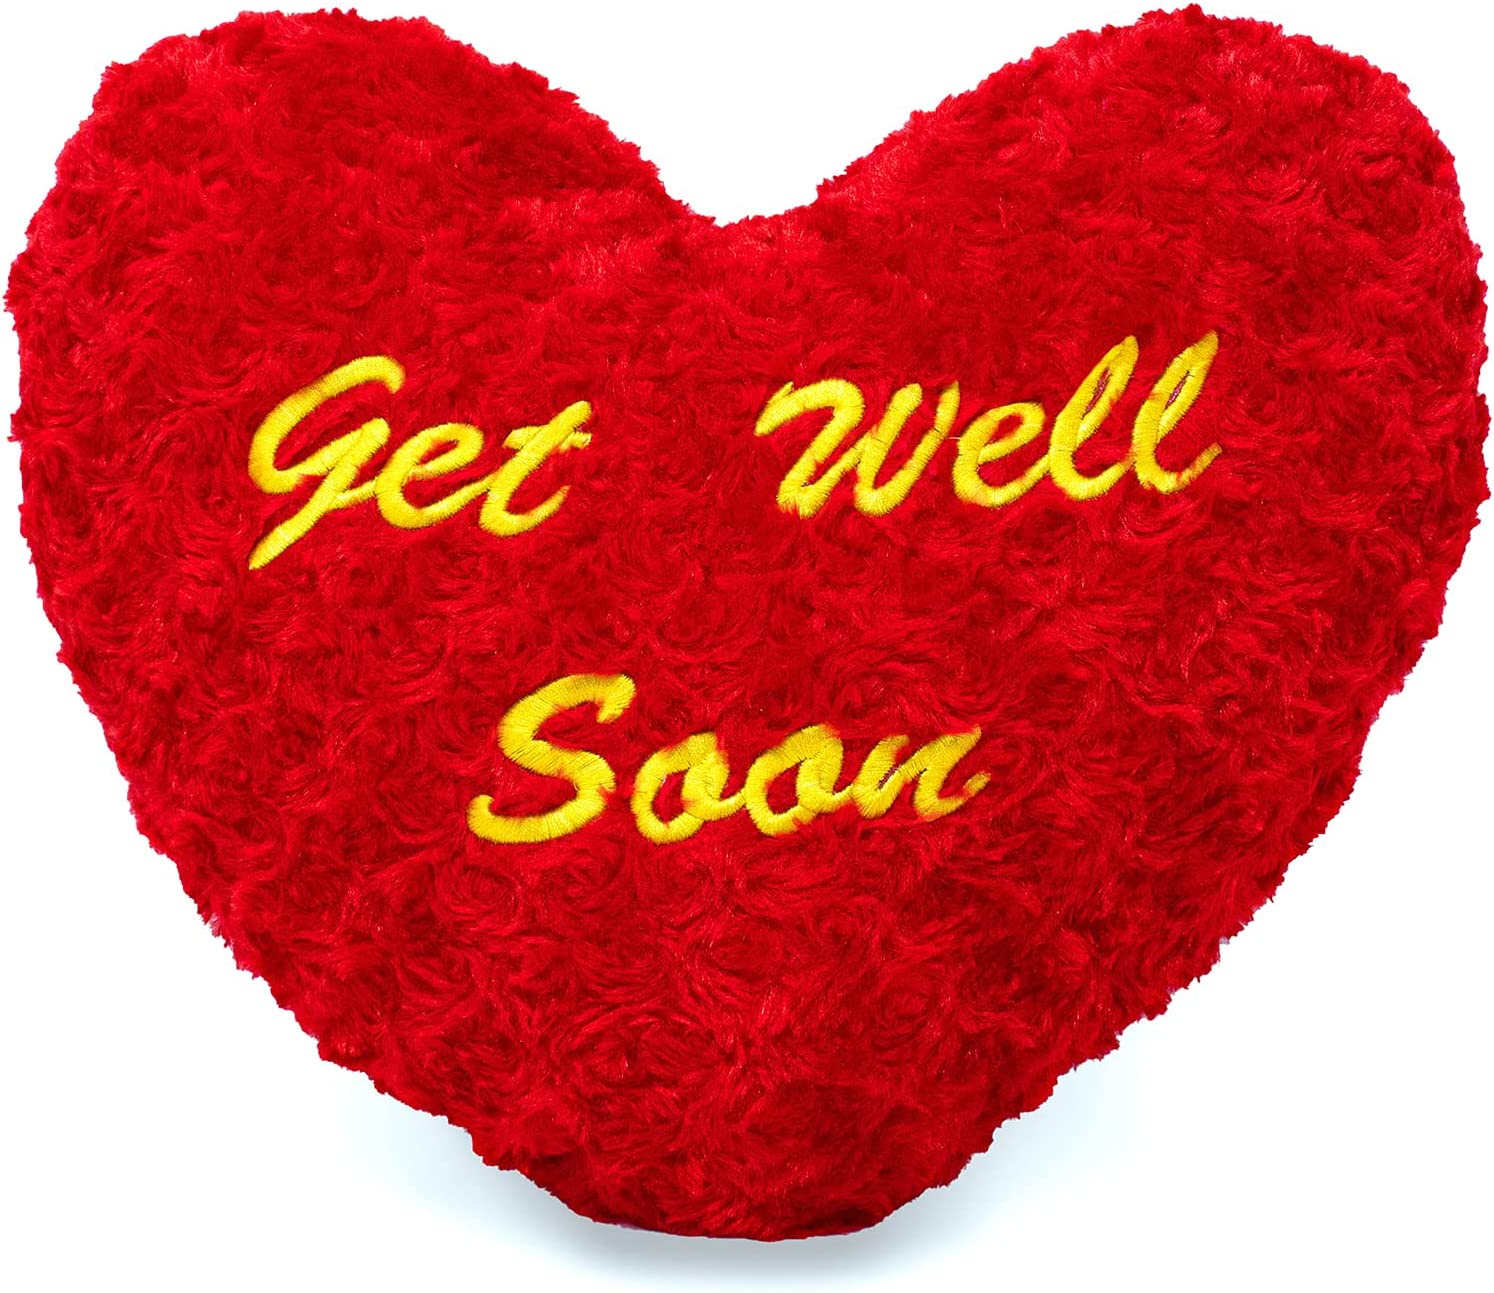 Plush Heart Superior Shaped Get Well Soon Pillow x inches Ranking TOP16 14.5 - Sup 12.5